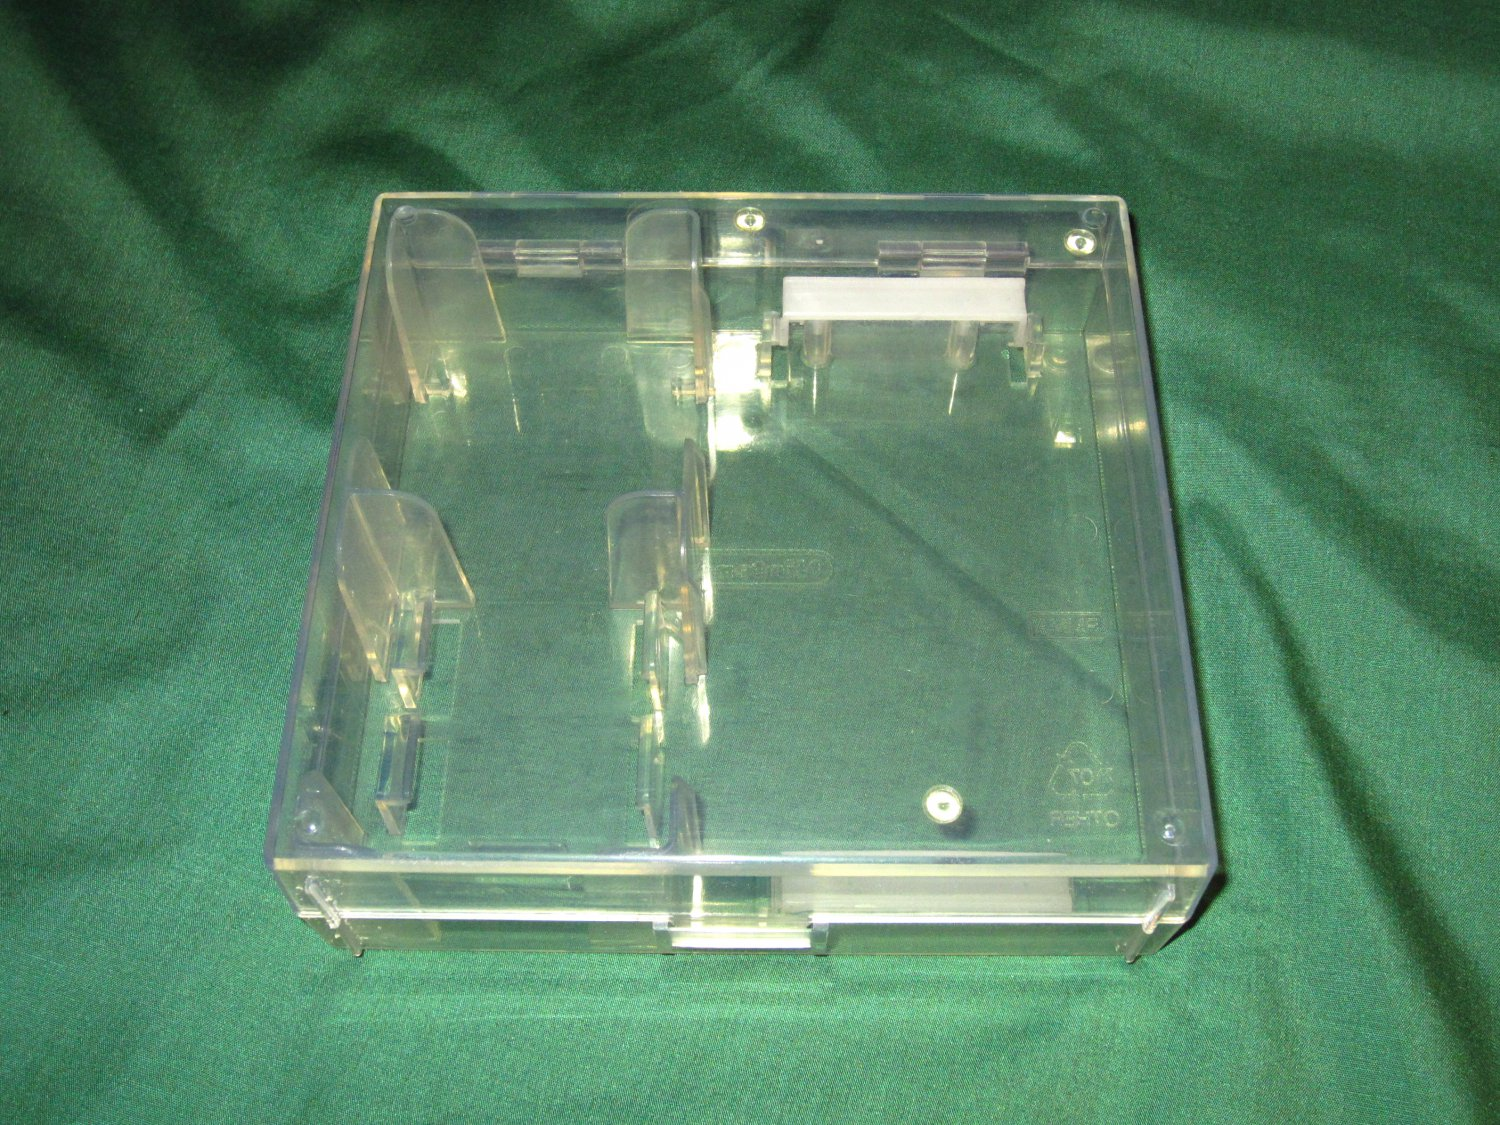 Classic Game Boy Storage/Display Case